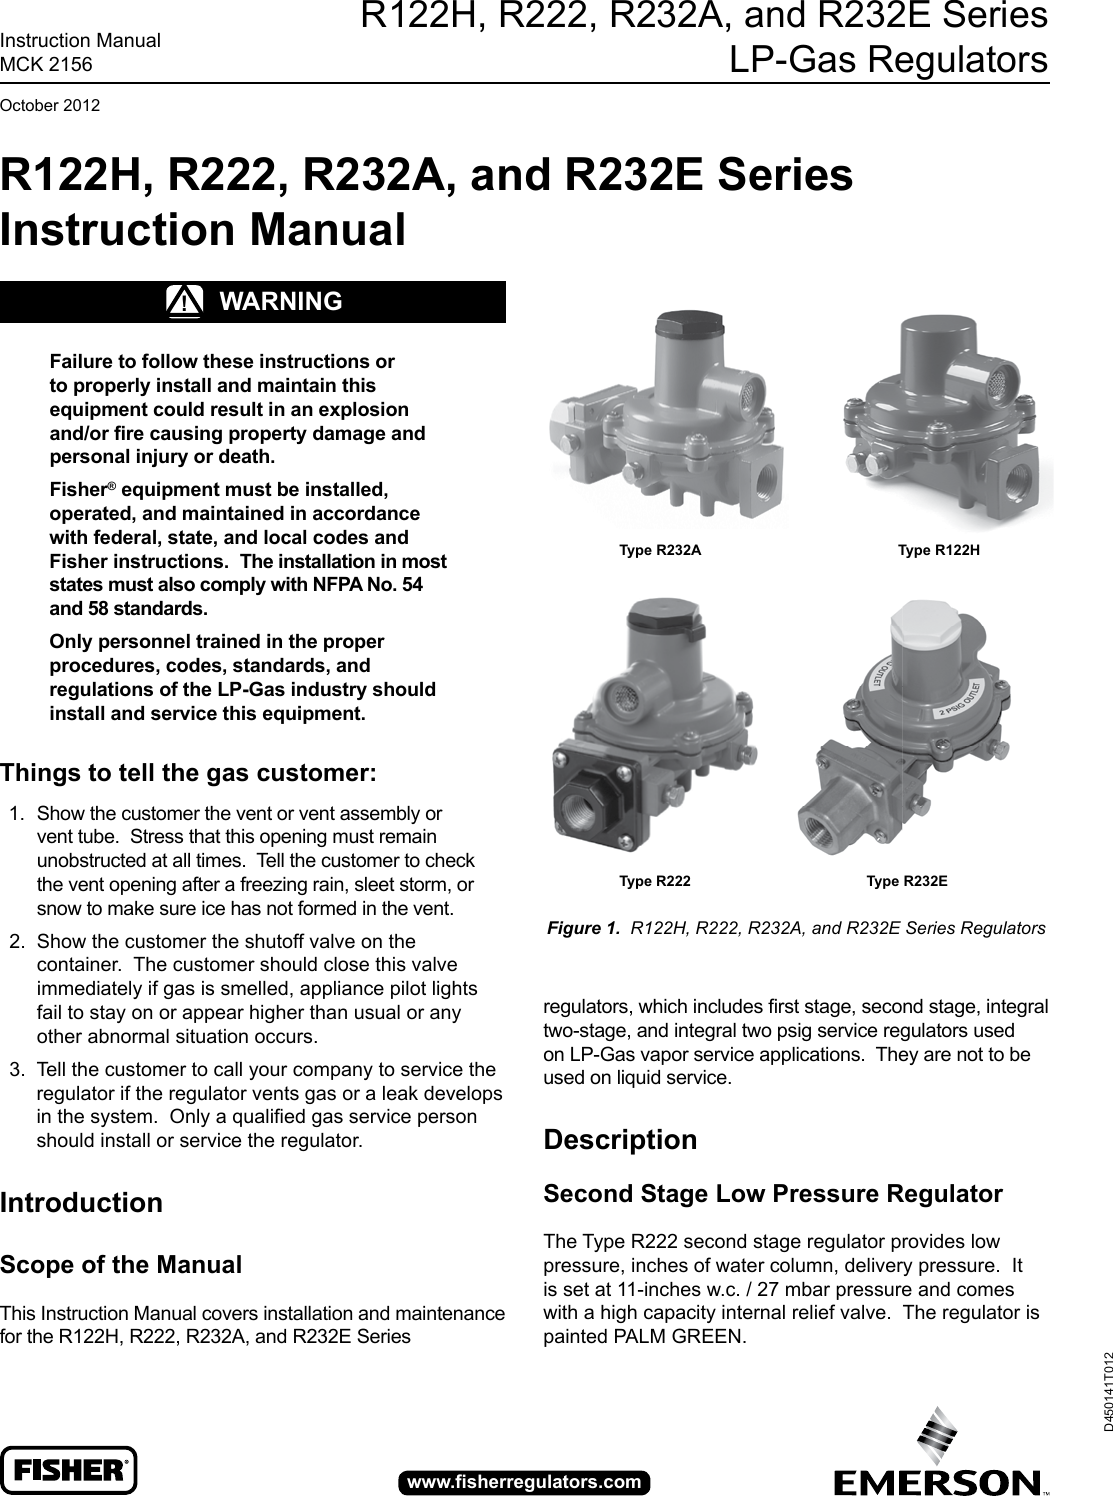 Emerson R222 Series Second Stage Regulator Instruction Manual